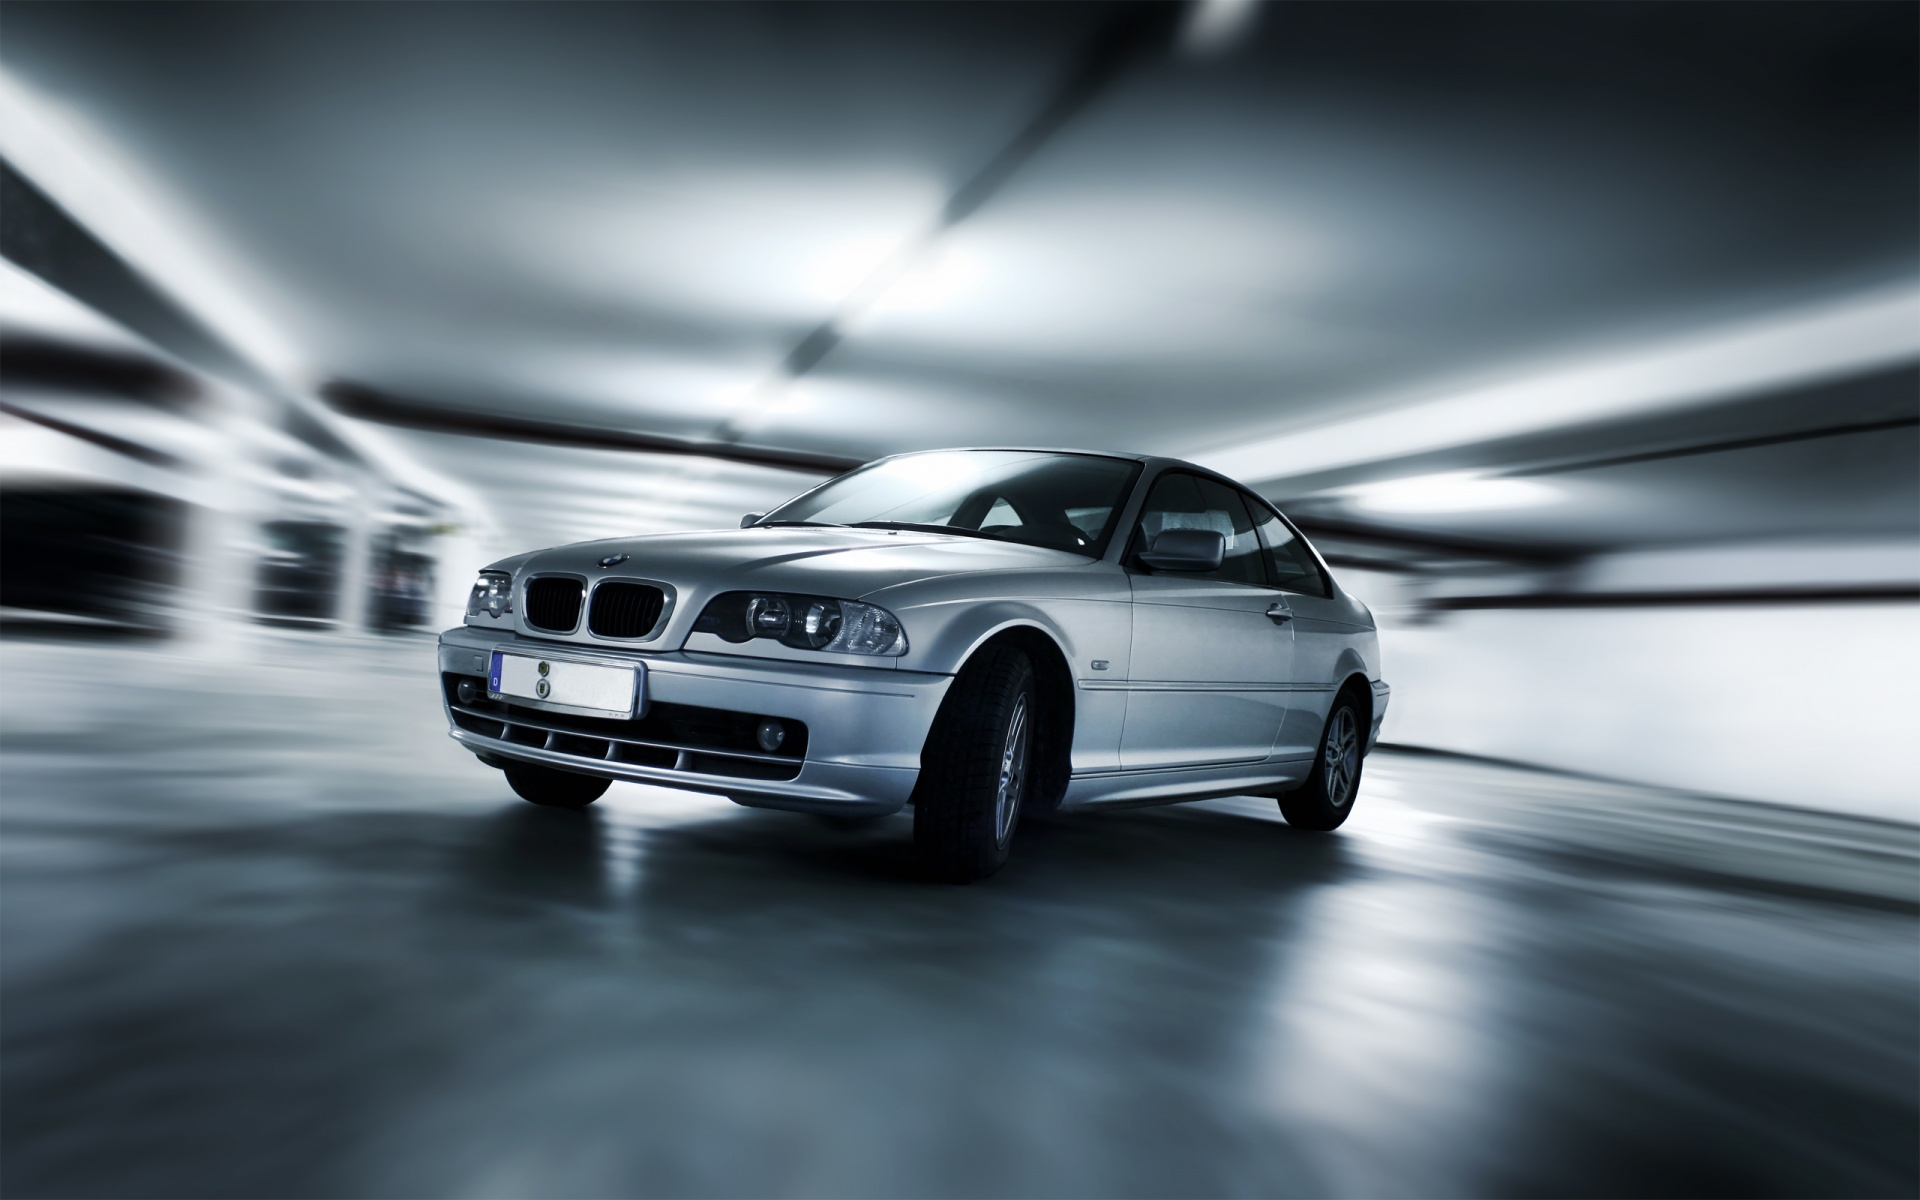 Bmw pictures for desktop BMW News And Reviews Top Speed